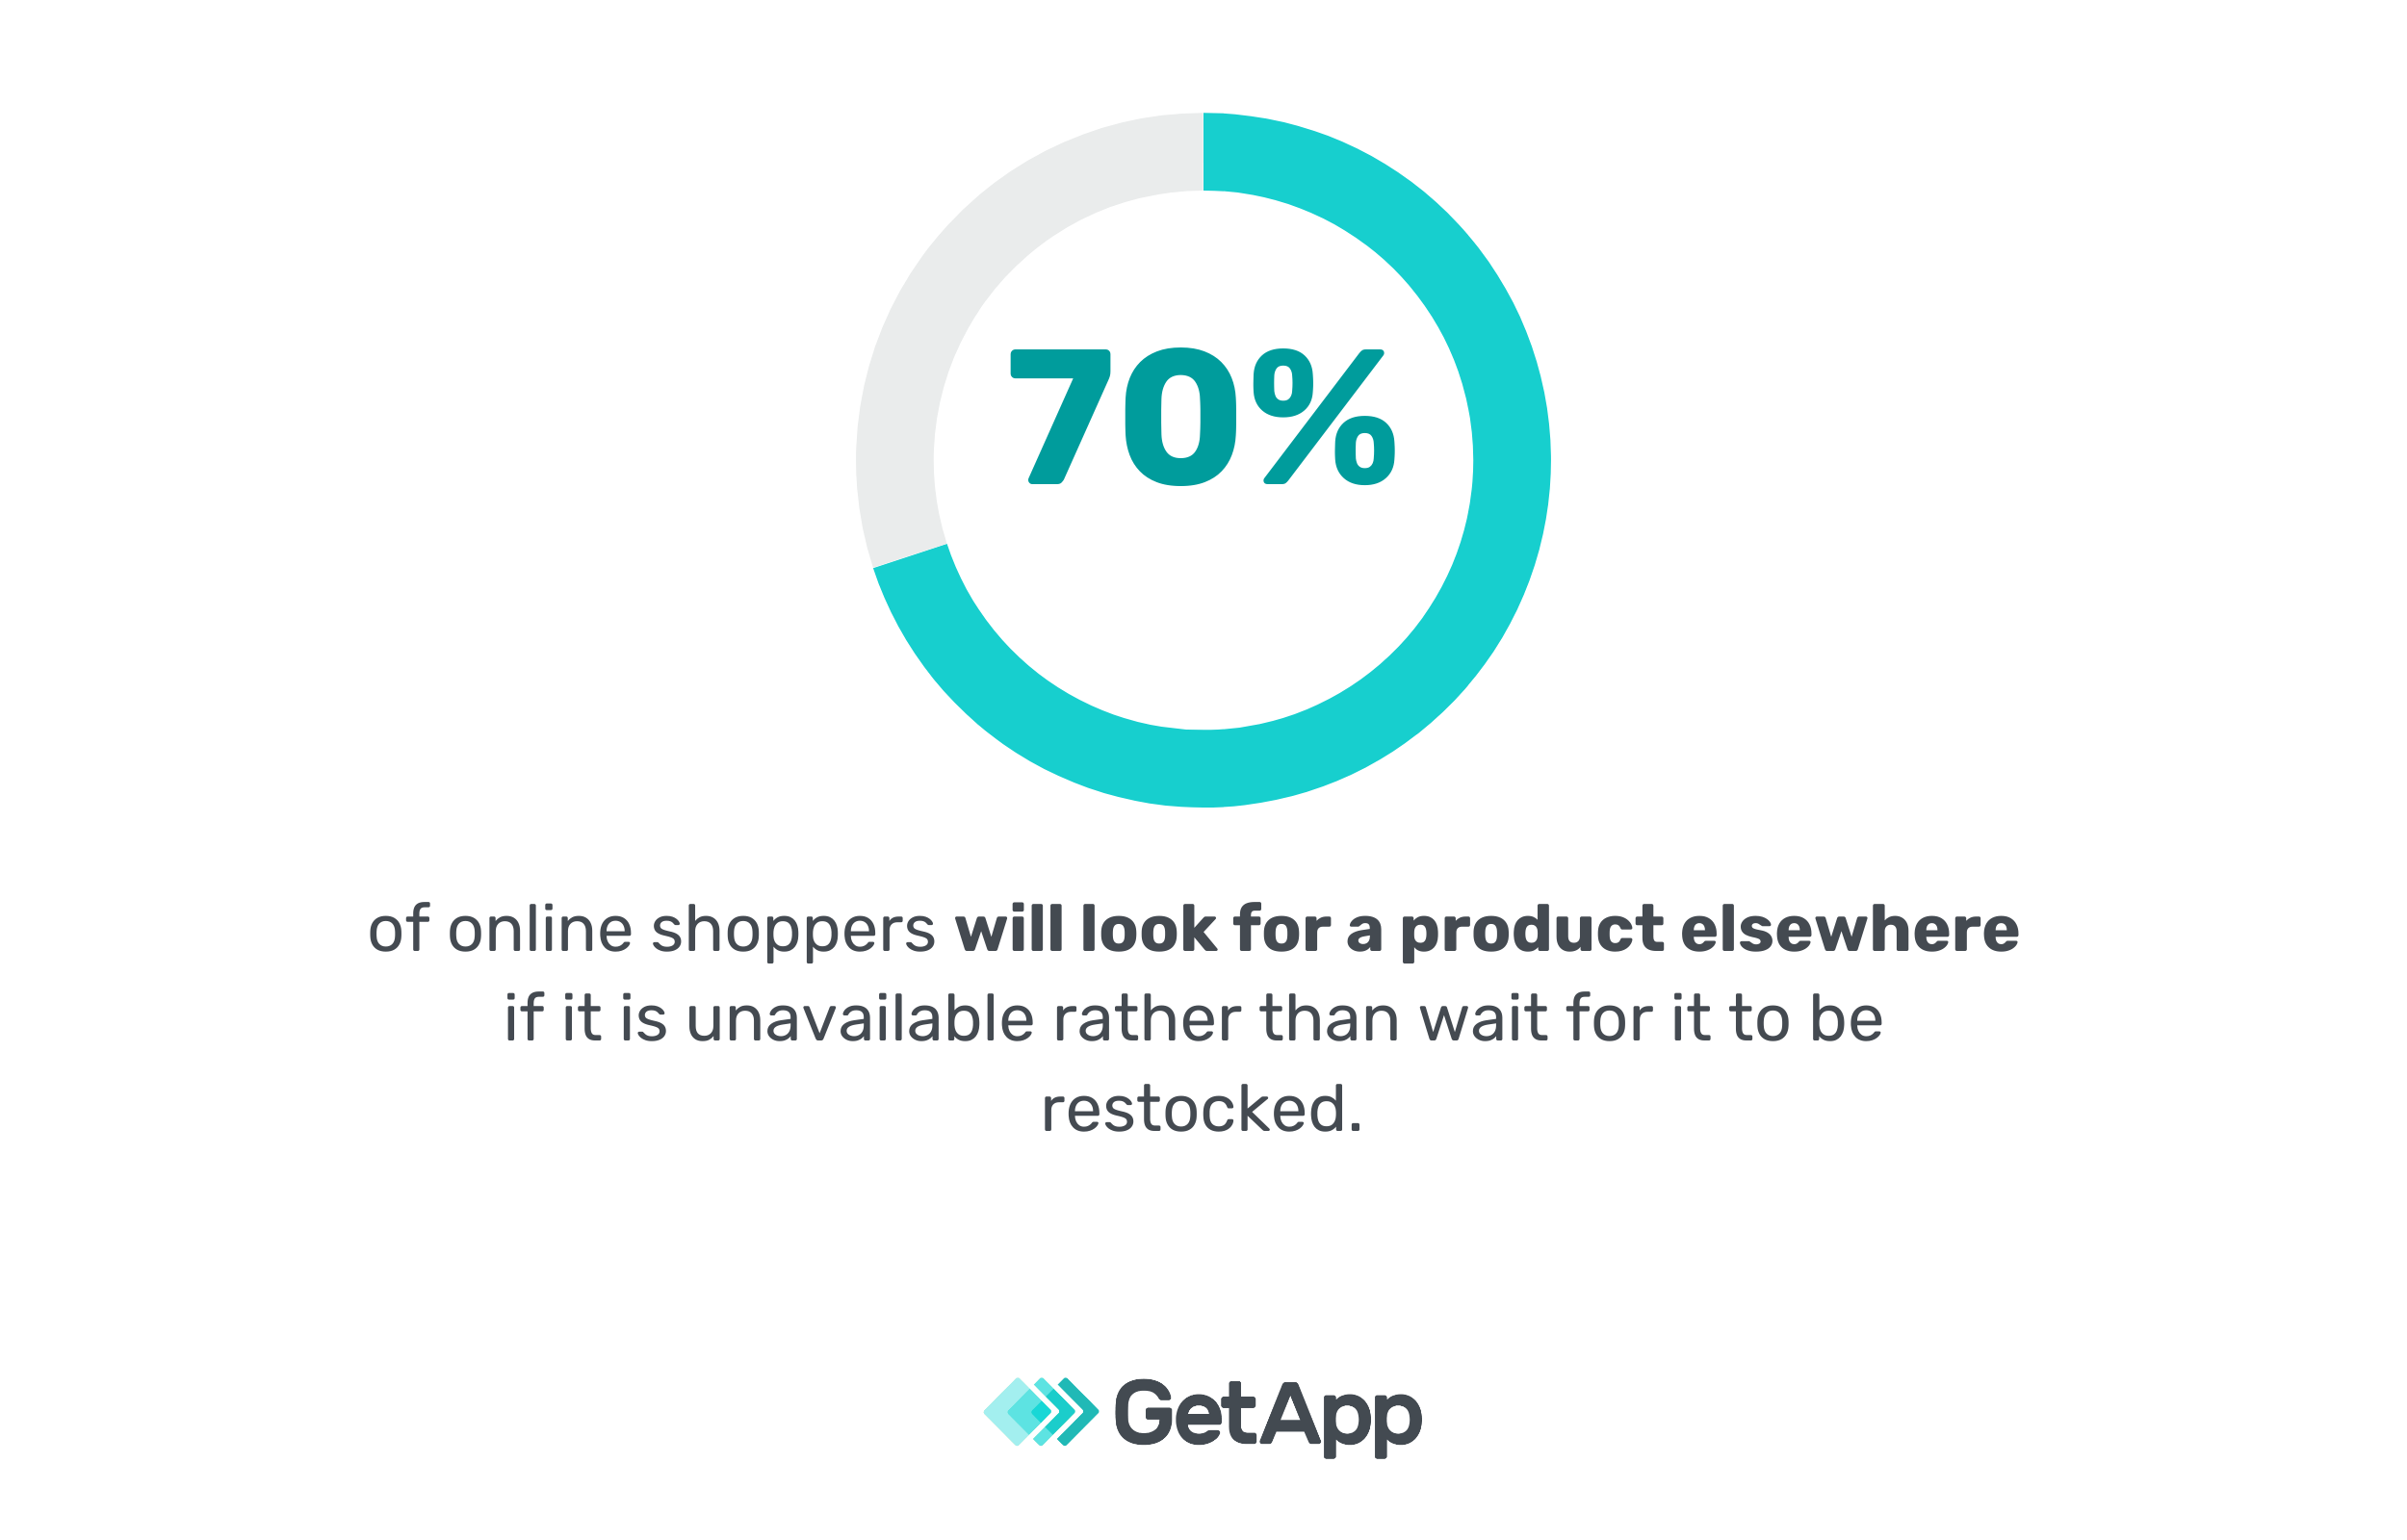 70% of online shoppers will look for a product elsewhere if it is unavailable rather than wait for it to be restocked.